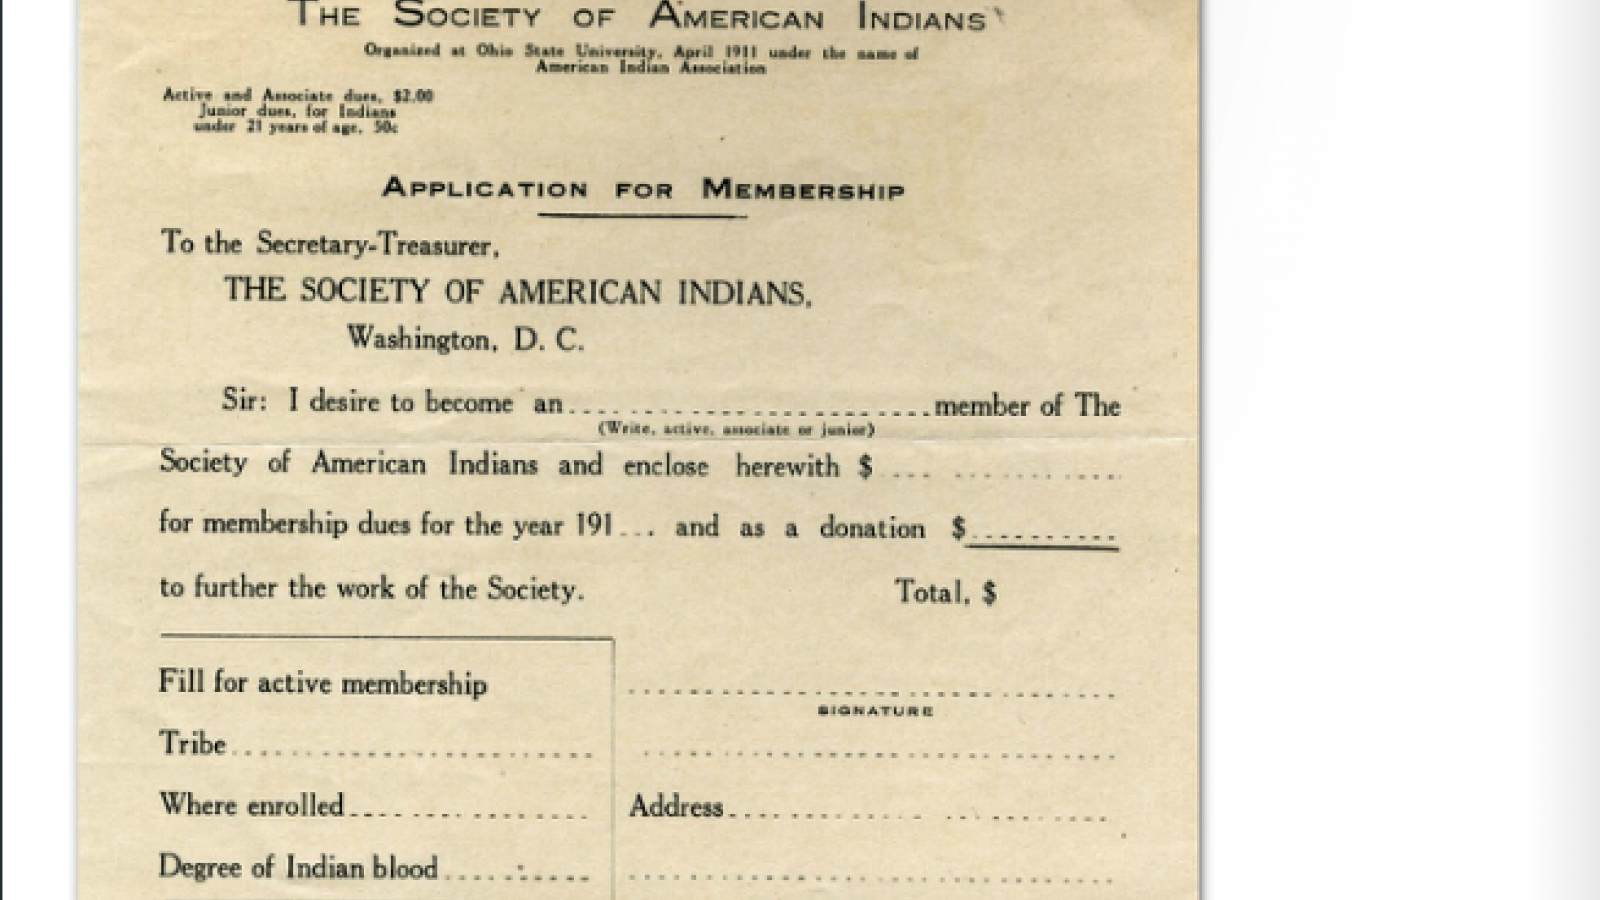 Society of American Indians Conference, Image 8